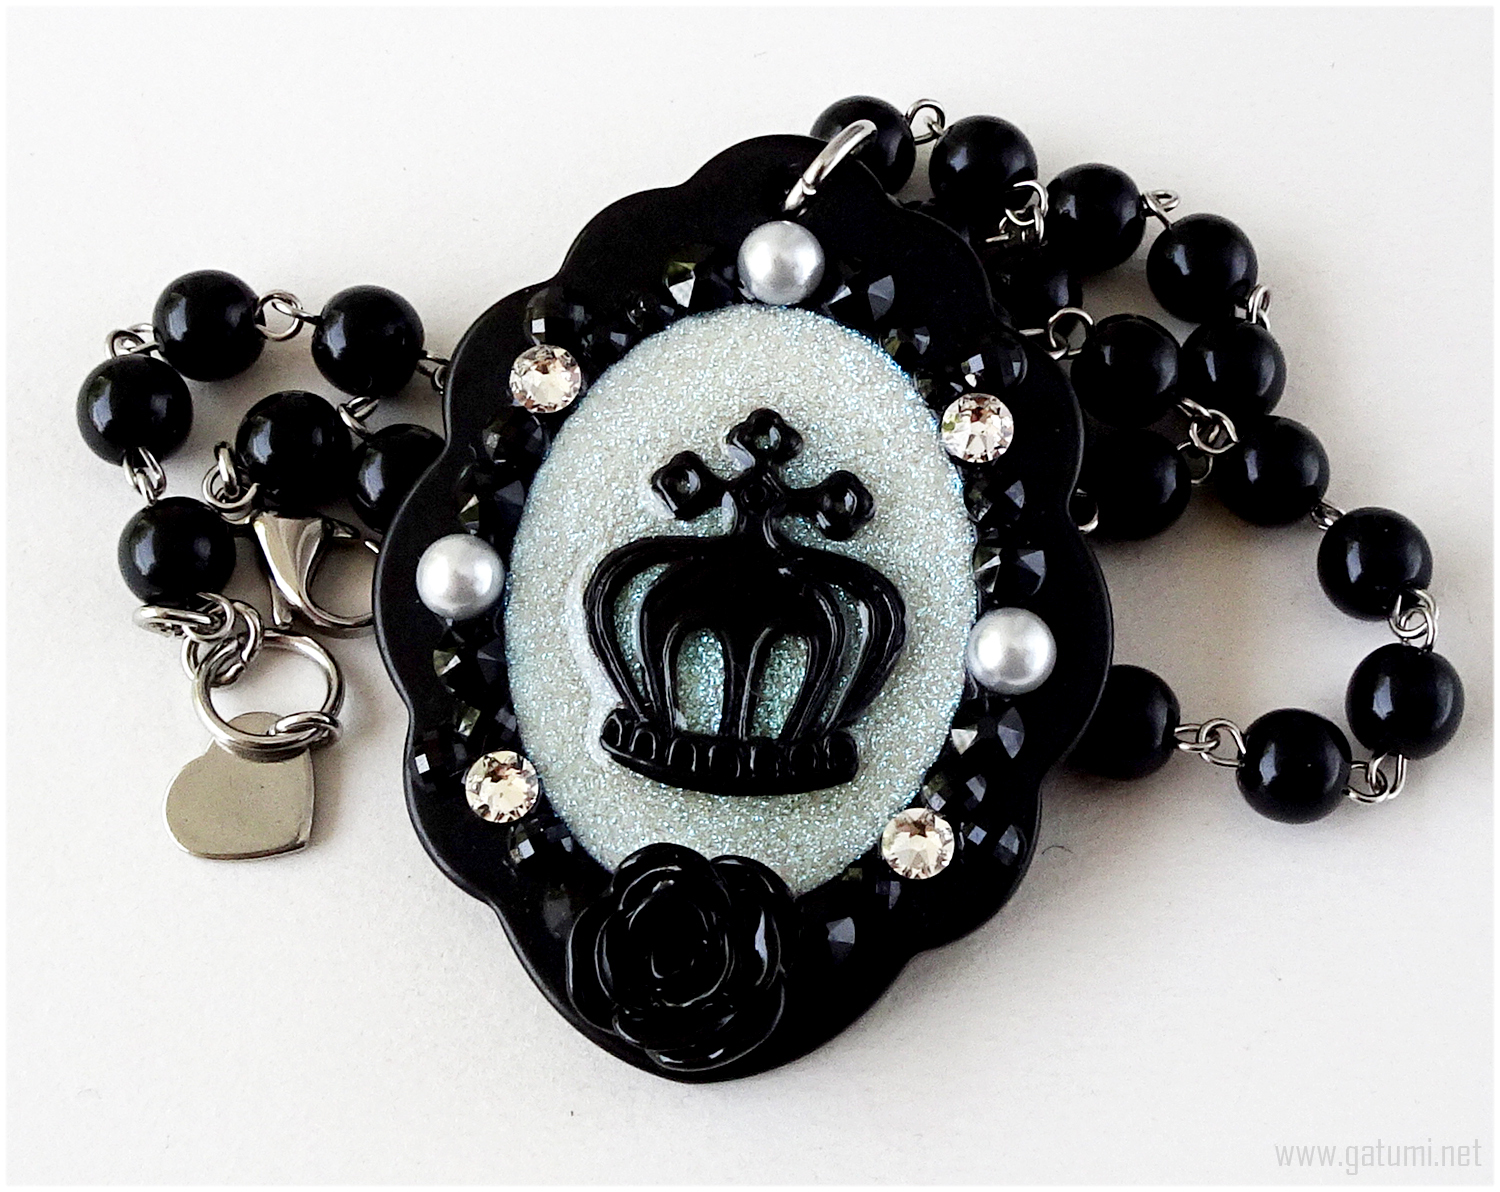 Black Crown Necklace, Resin, Cameo Jewelry, Gothic Lolita, EGL, Handmade - $27.00